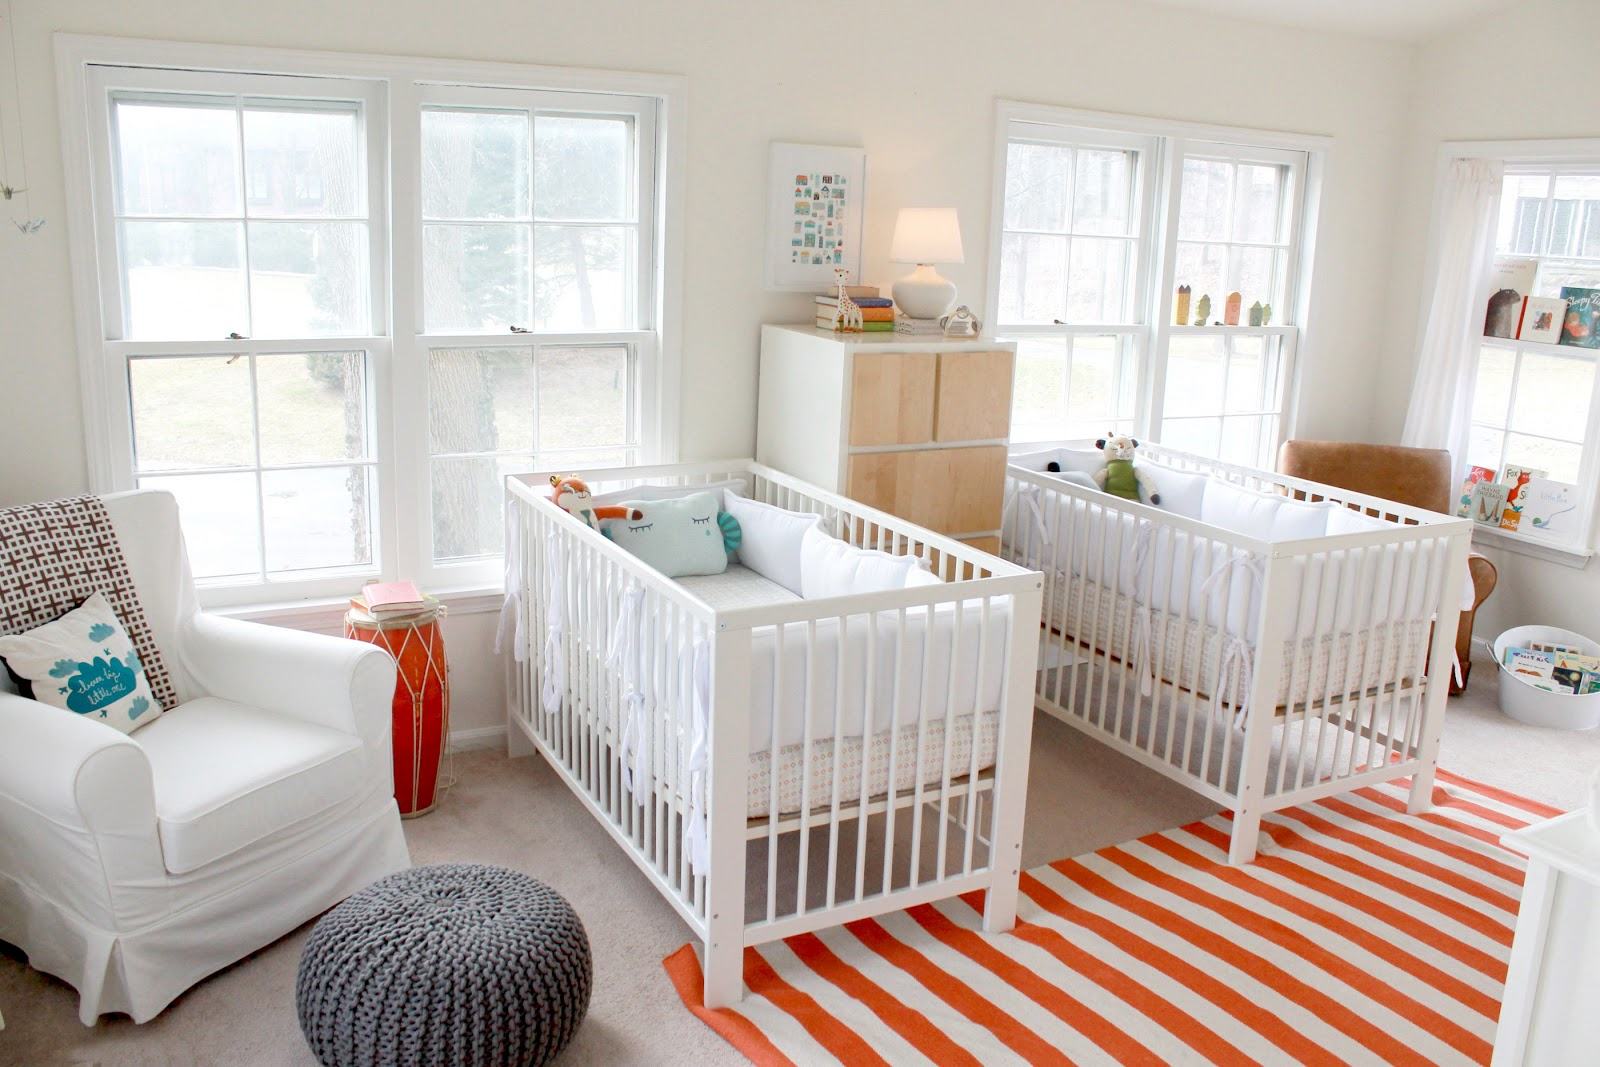 Charming Little Boys Bedroom - Interiors By Color   Twin Baby Boy Bedroom